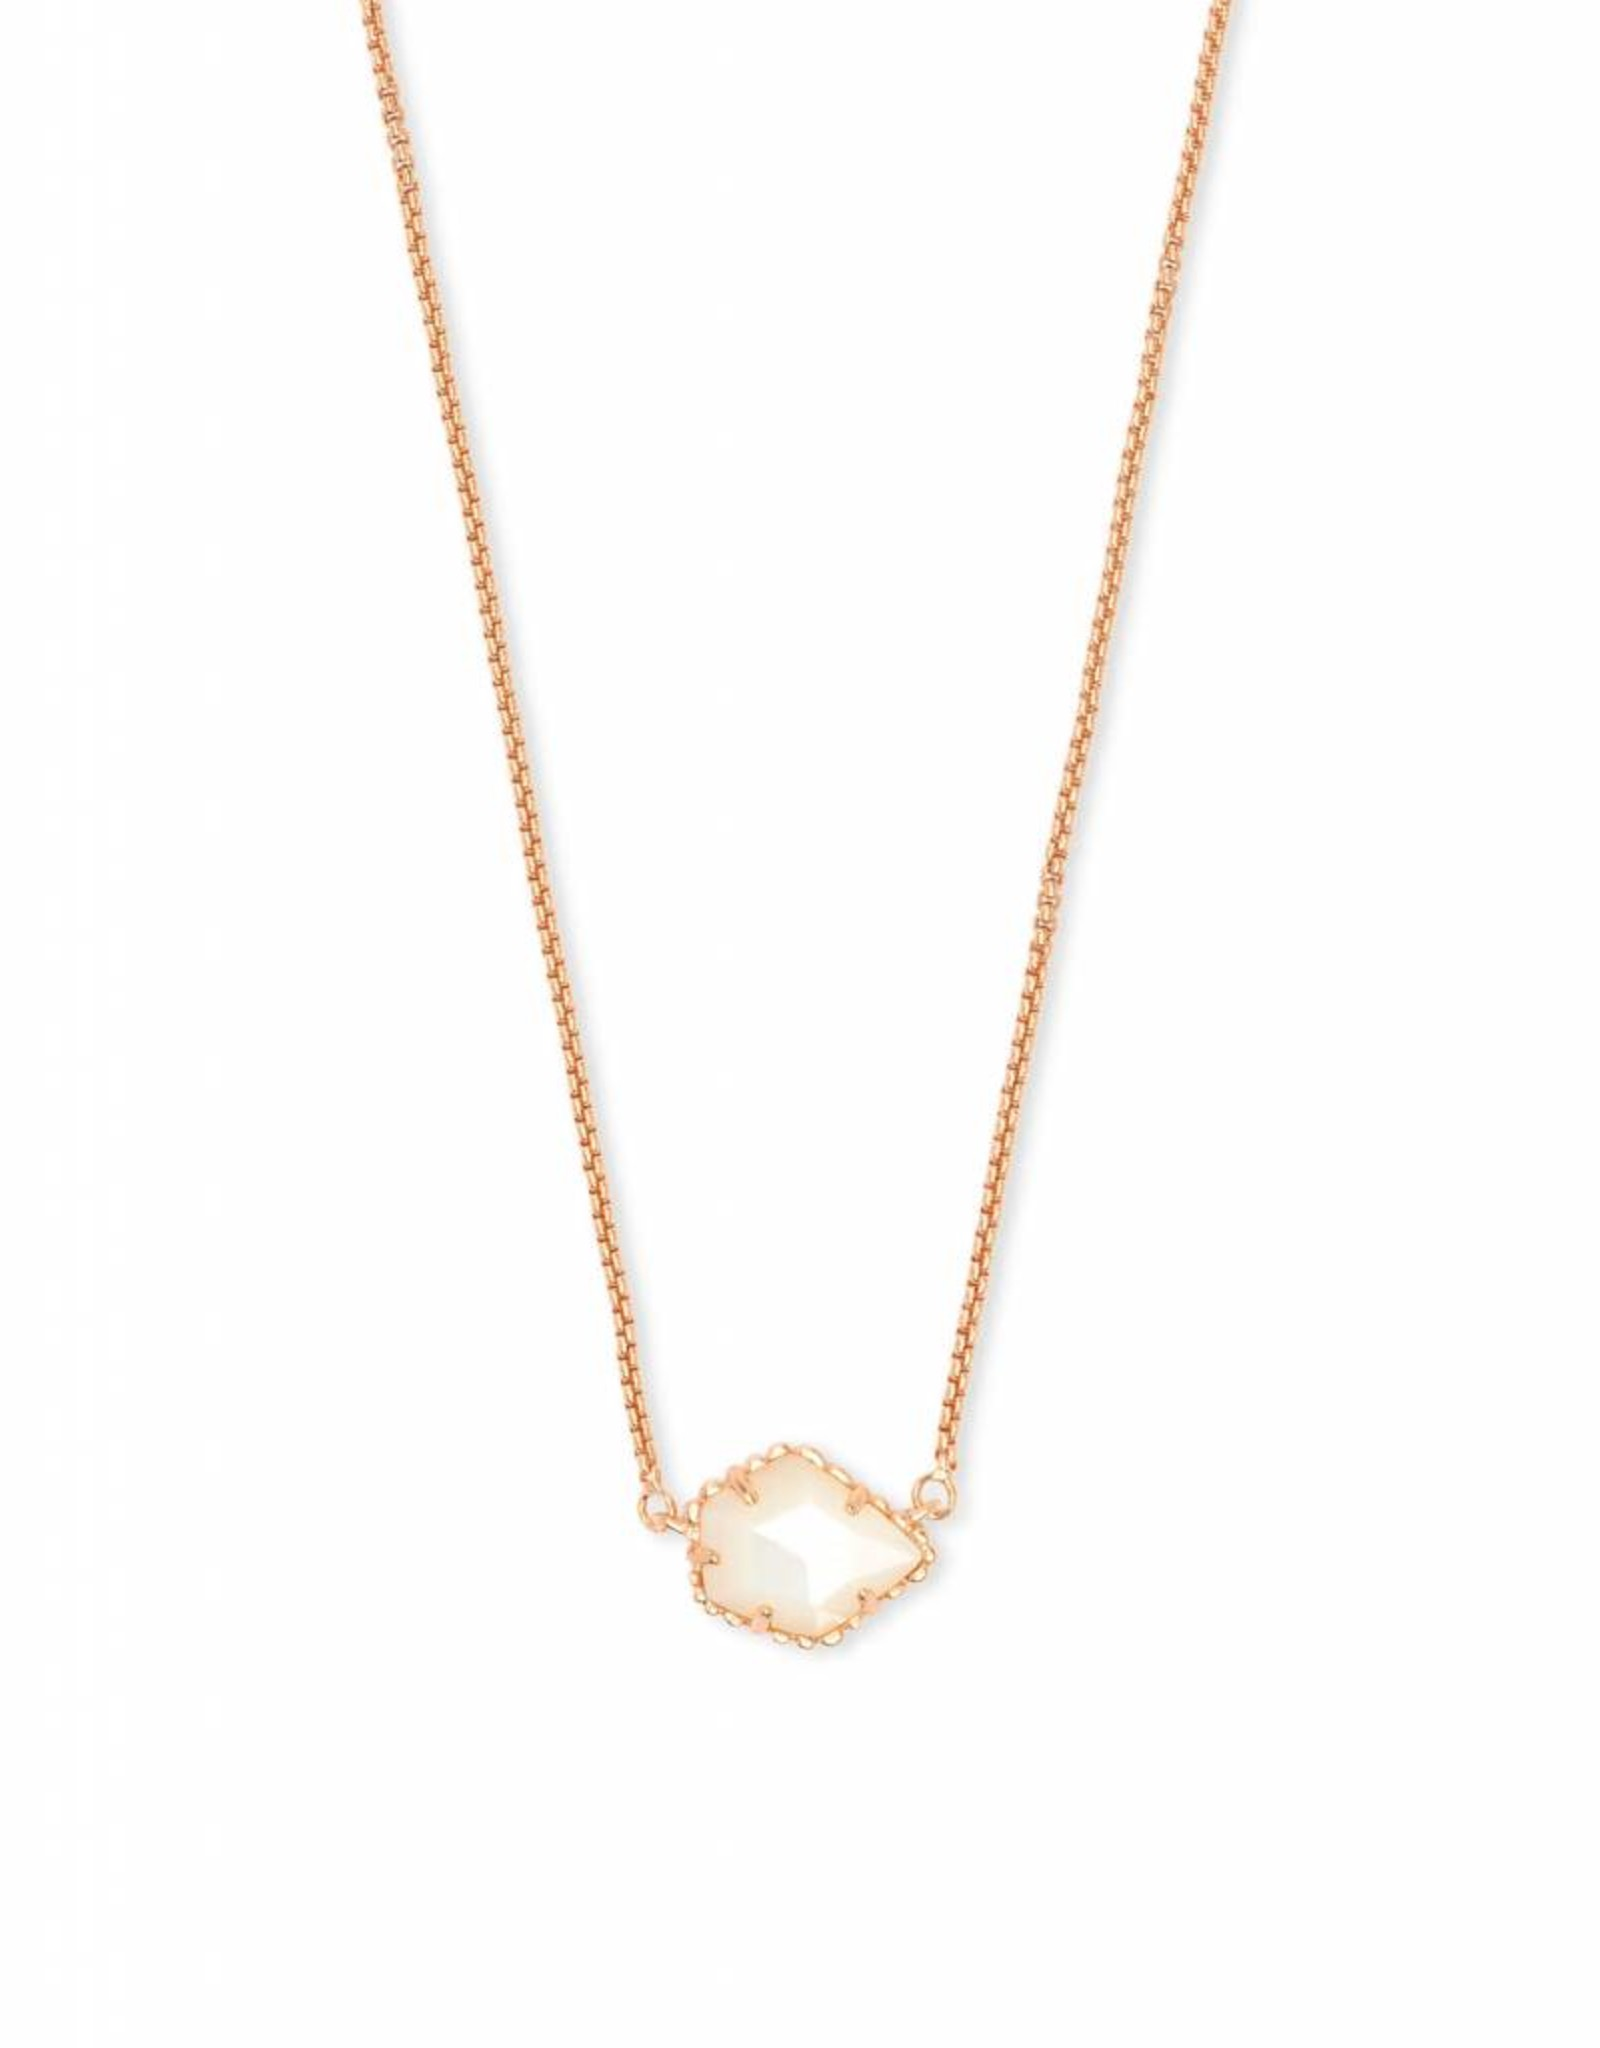 Kendra Scott Kendra Scott Tess Necklace Rose Gold